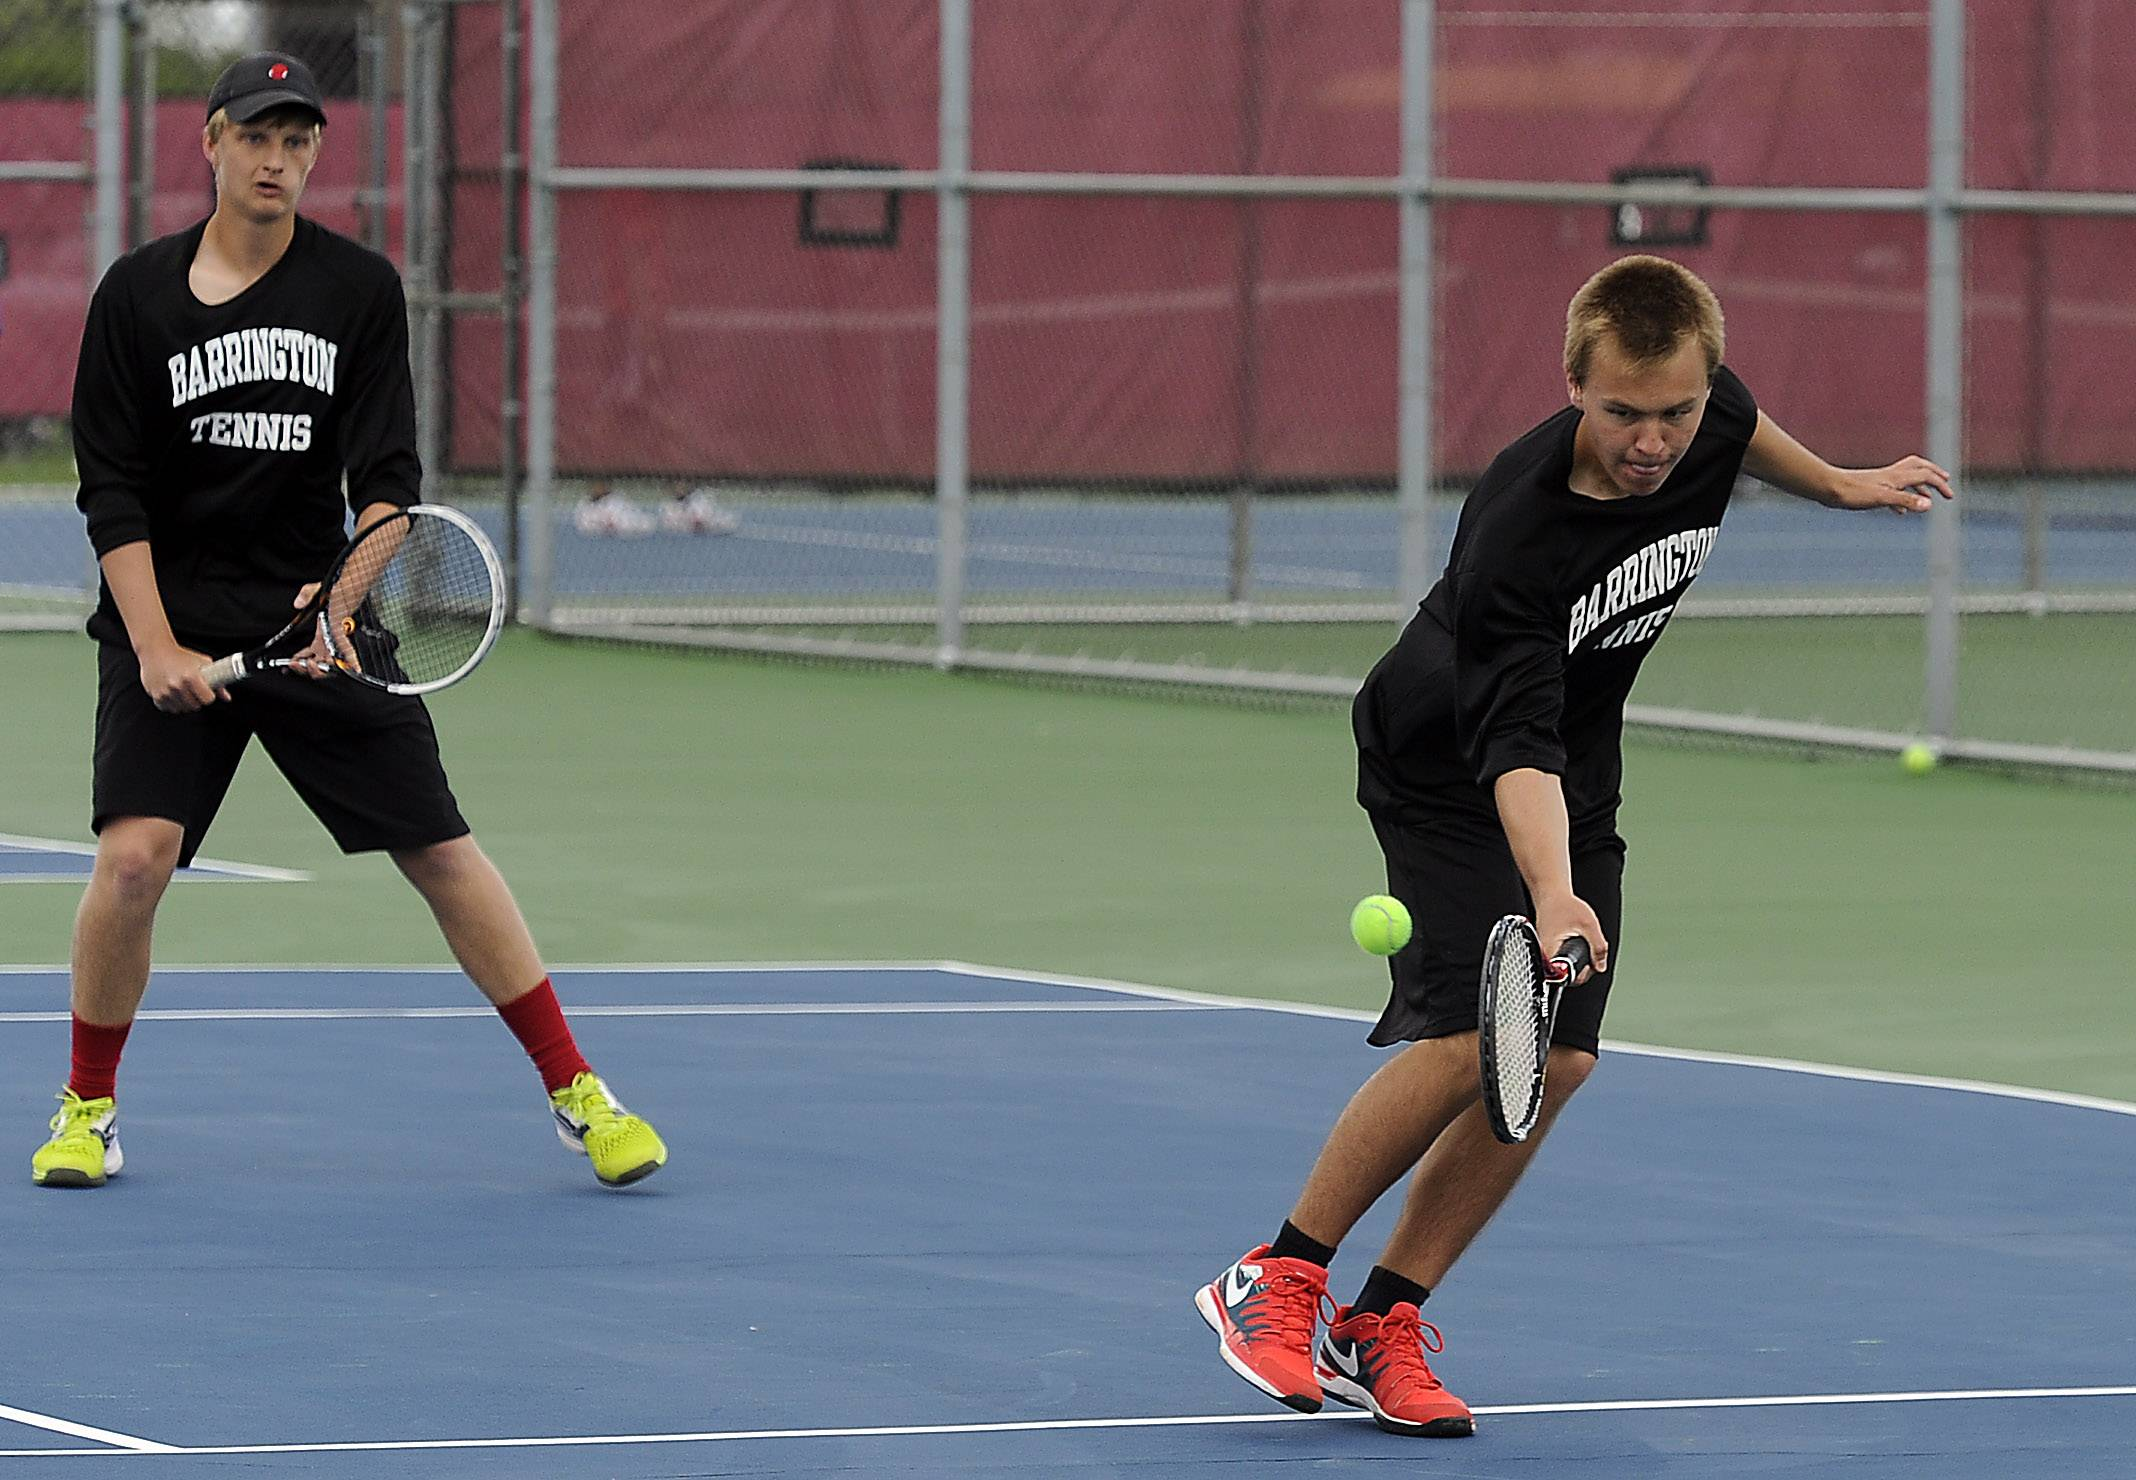 Barrington's Scott Apmann returns a low ball as his doubles partner Dean Carlson looks on during Saturday's Mid-Suburban League touranment at Schaumburg.